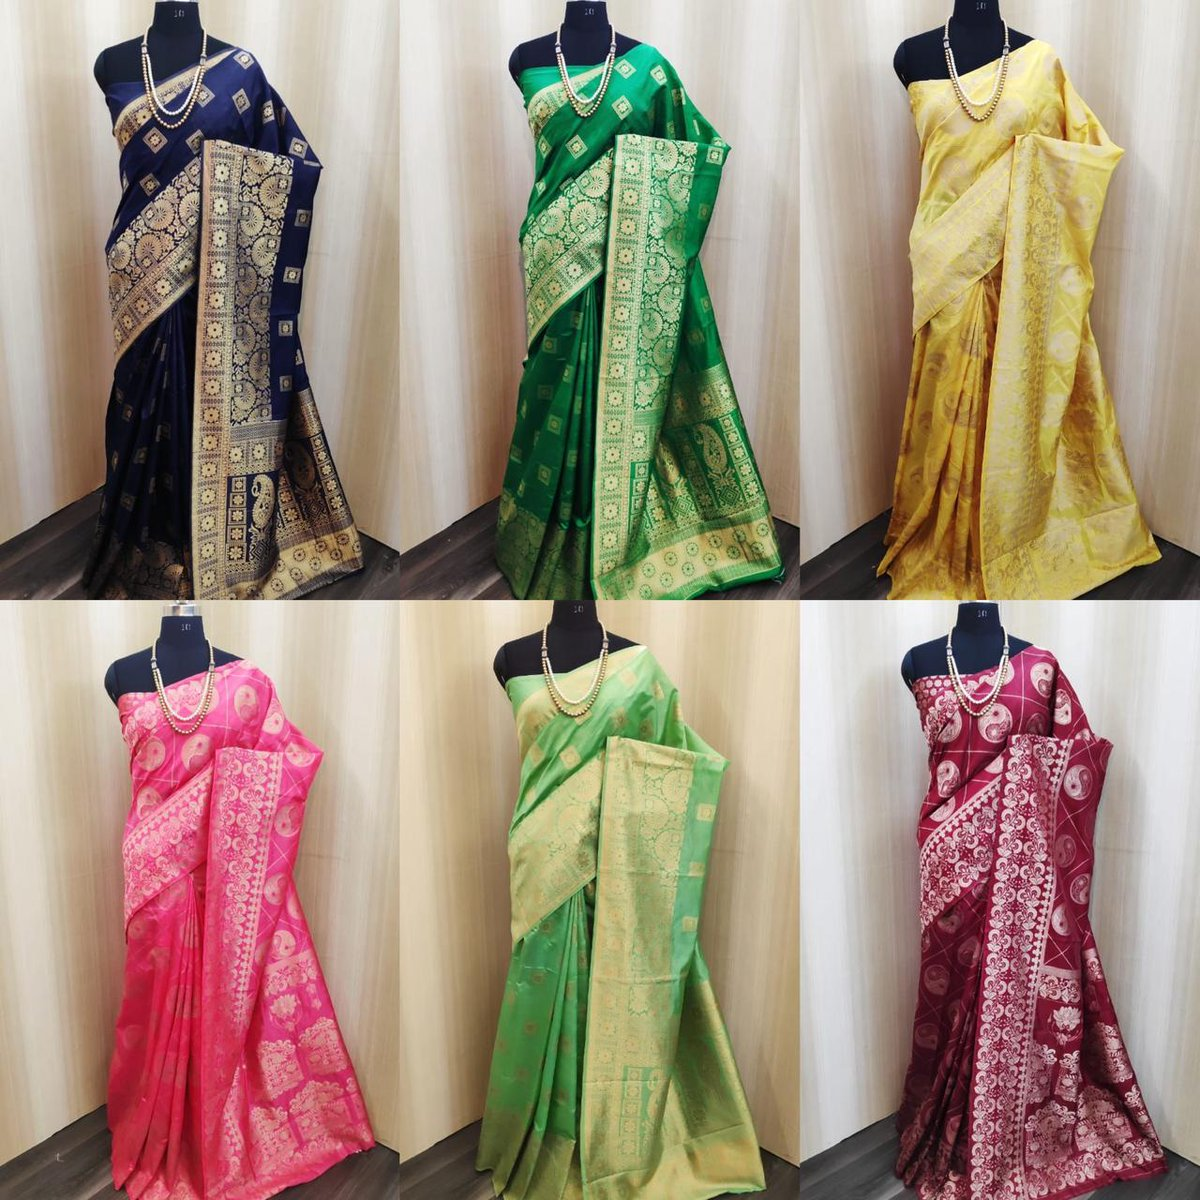 FG Silk Festive Wear Formal Collection Saree  !!  Single Piece Price: 1250/- INR (GST + Shipping)   Singles Available with us at wholesale Rate.  We deliver to worldwide. Also provide stitching Facility.  For any Inquiries contact us here:  http://api.whatsapp.com/send?phone=918460784608…  #designersaree pic.twitter.com/IfVCVnntzG